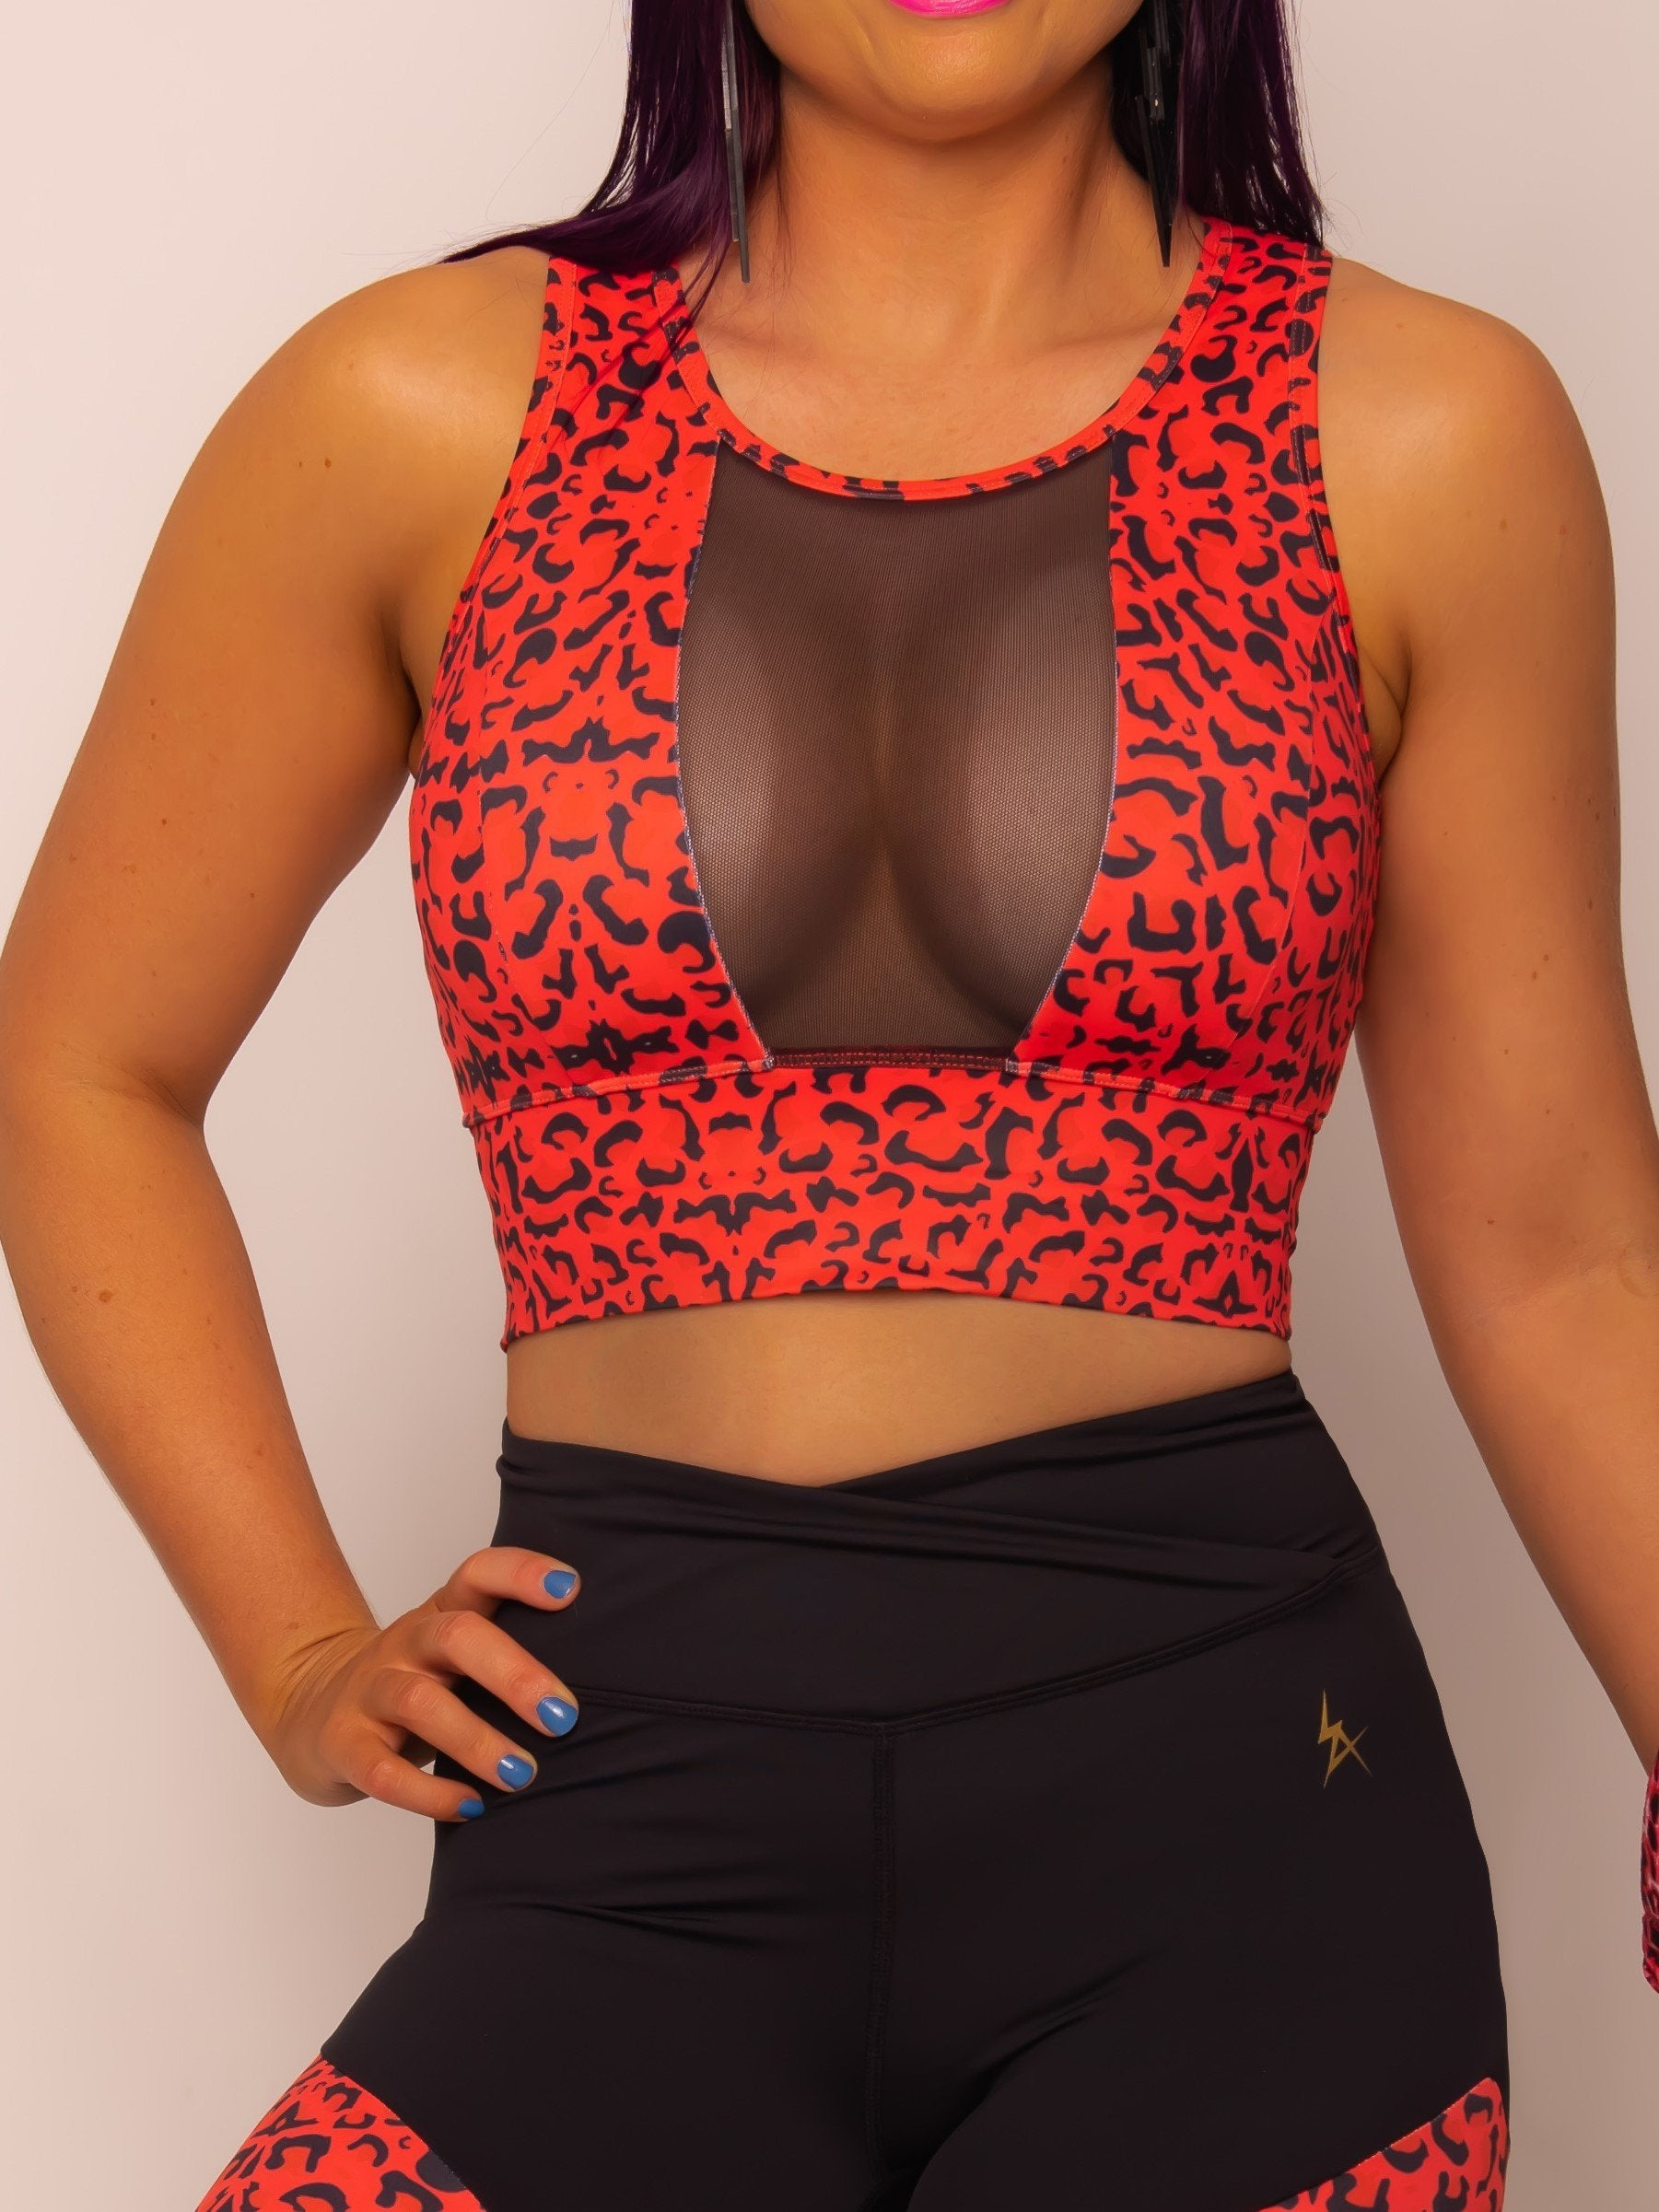 Red Leopard Mesh Crop - Iron Addiction